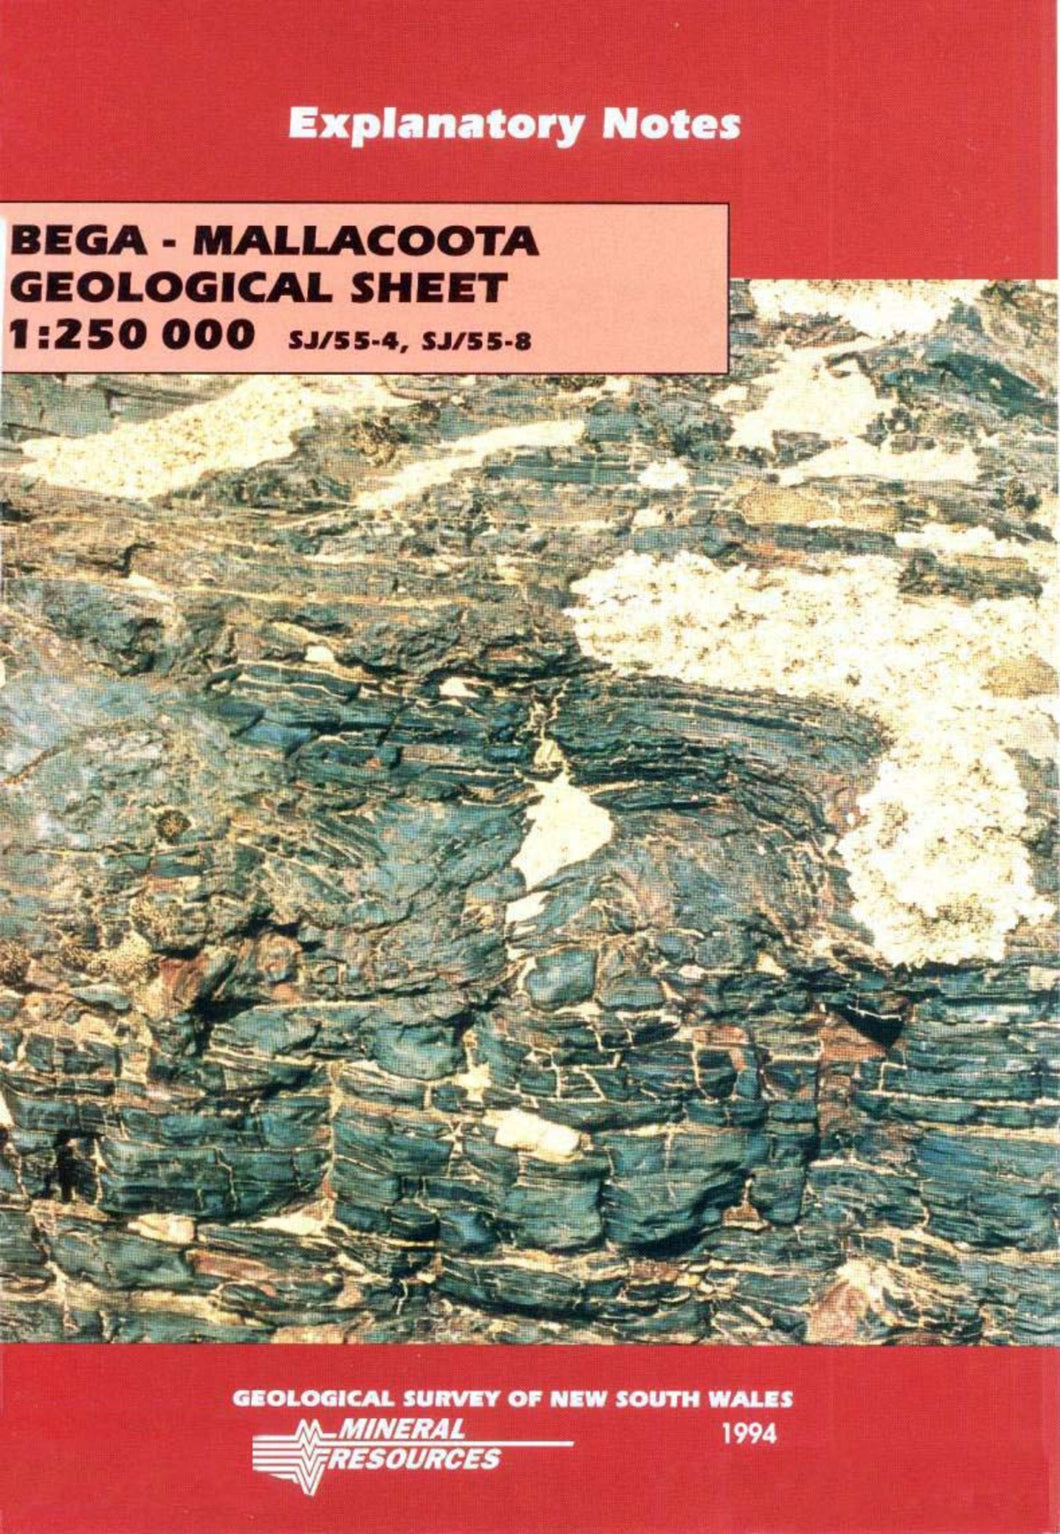 Image of Bega Mallacoota Explanatory Notes 1994 book cover